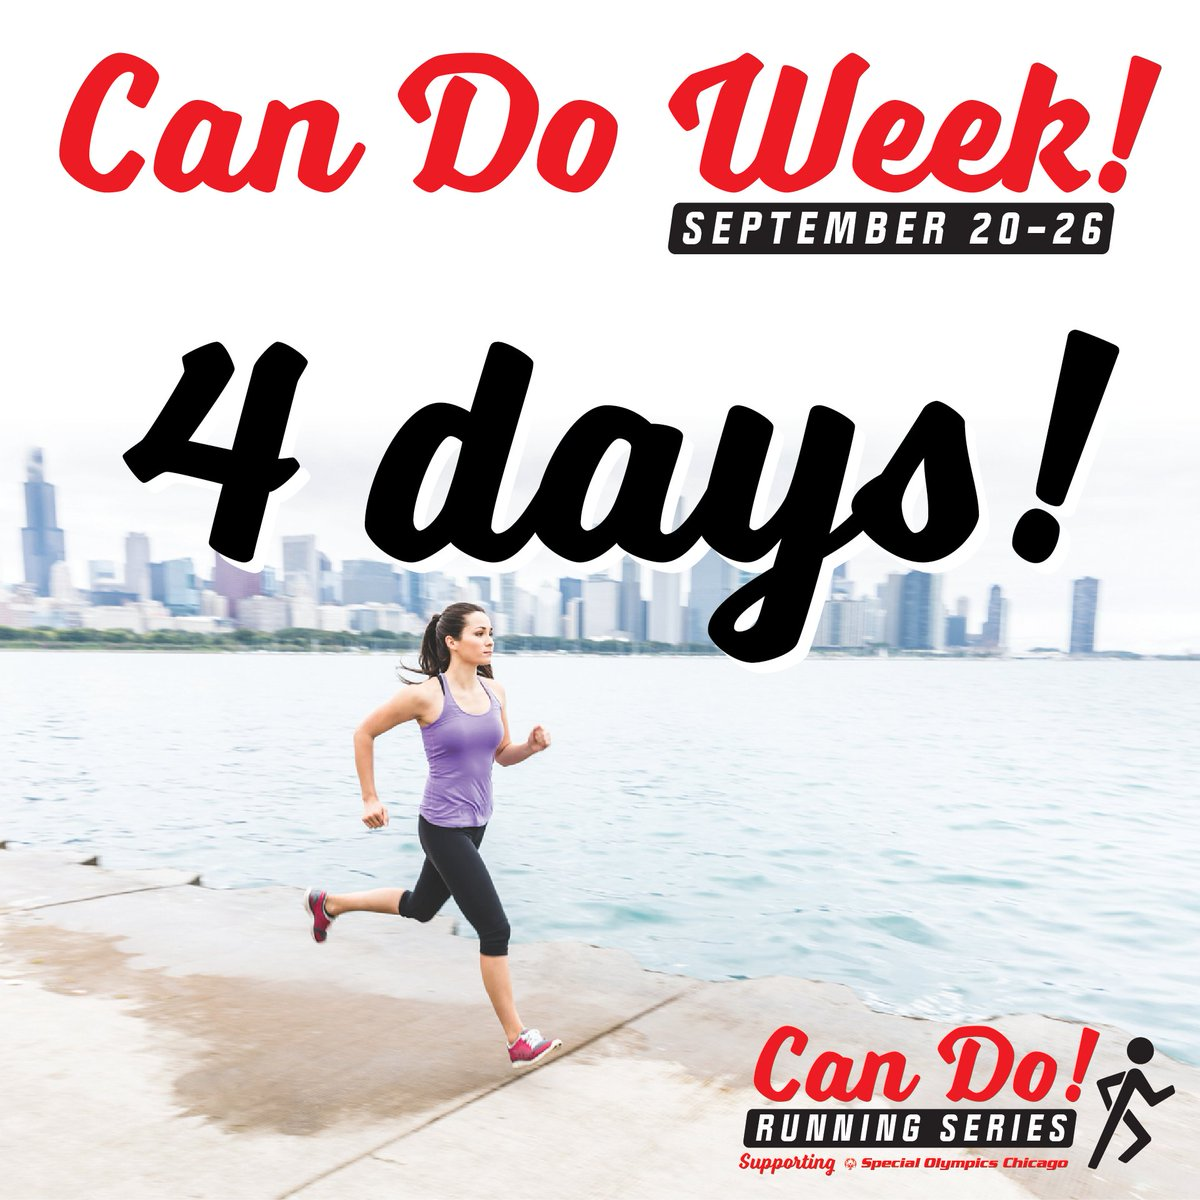 4 days until Can Do Week! Your participation helps to provide resources for 7,500 Special Olympics athletes right here in Chicago! That's why we always say #CanDoThanksToYou! Join today at https://t.co/wfIKNUO1kk! https://t.co/8nwbxkXWRY